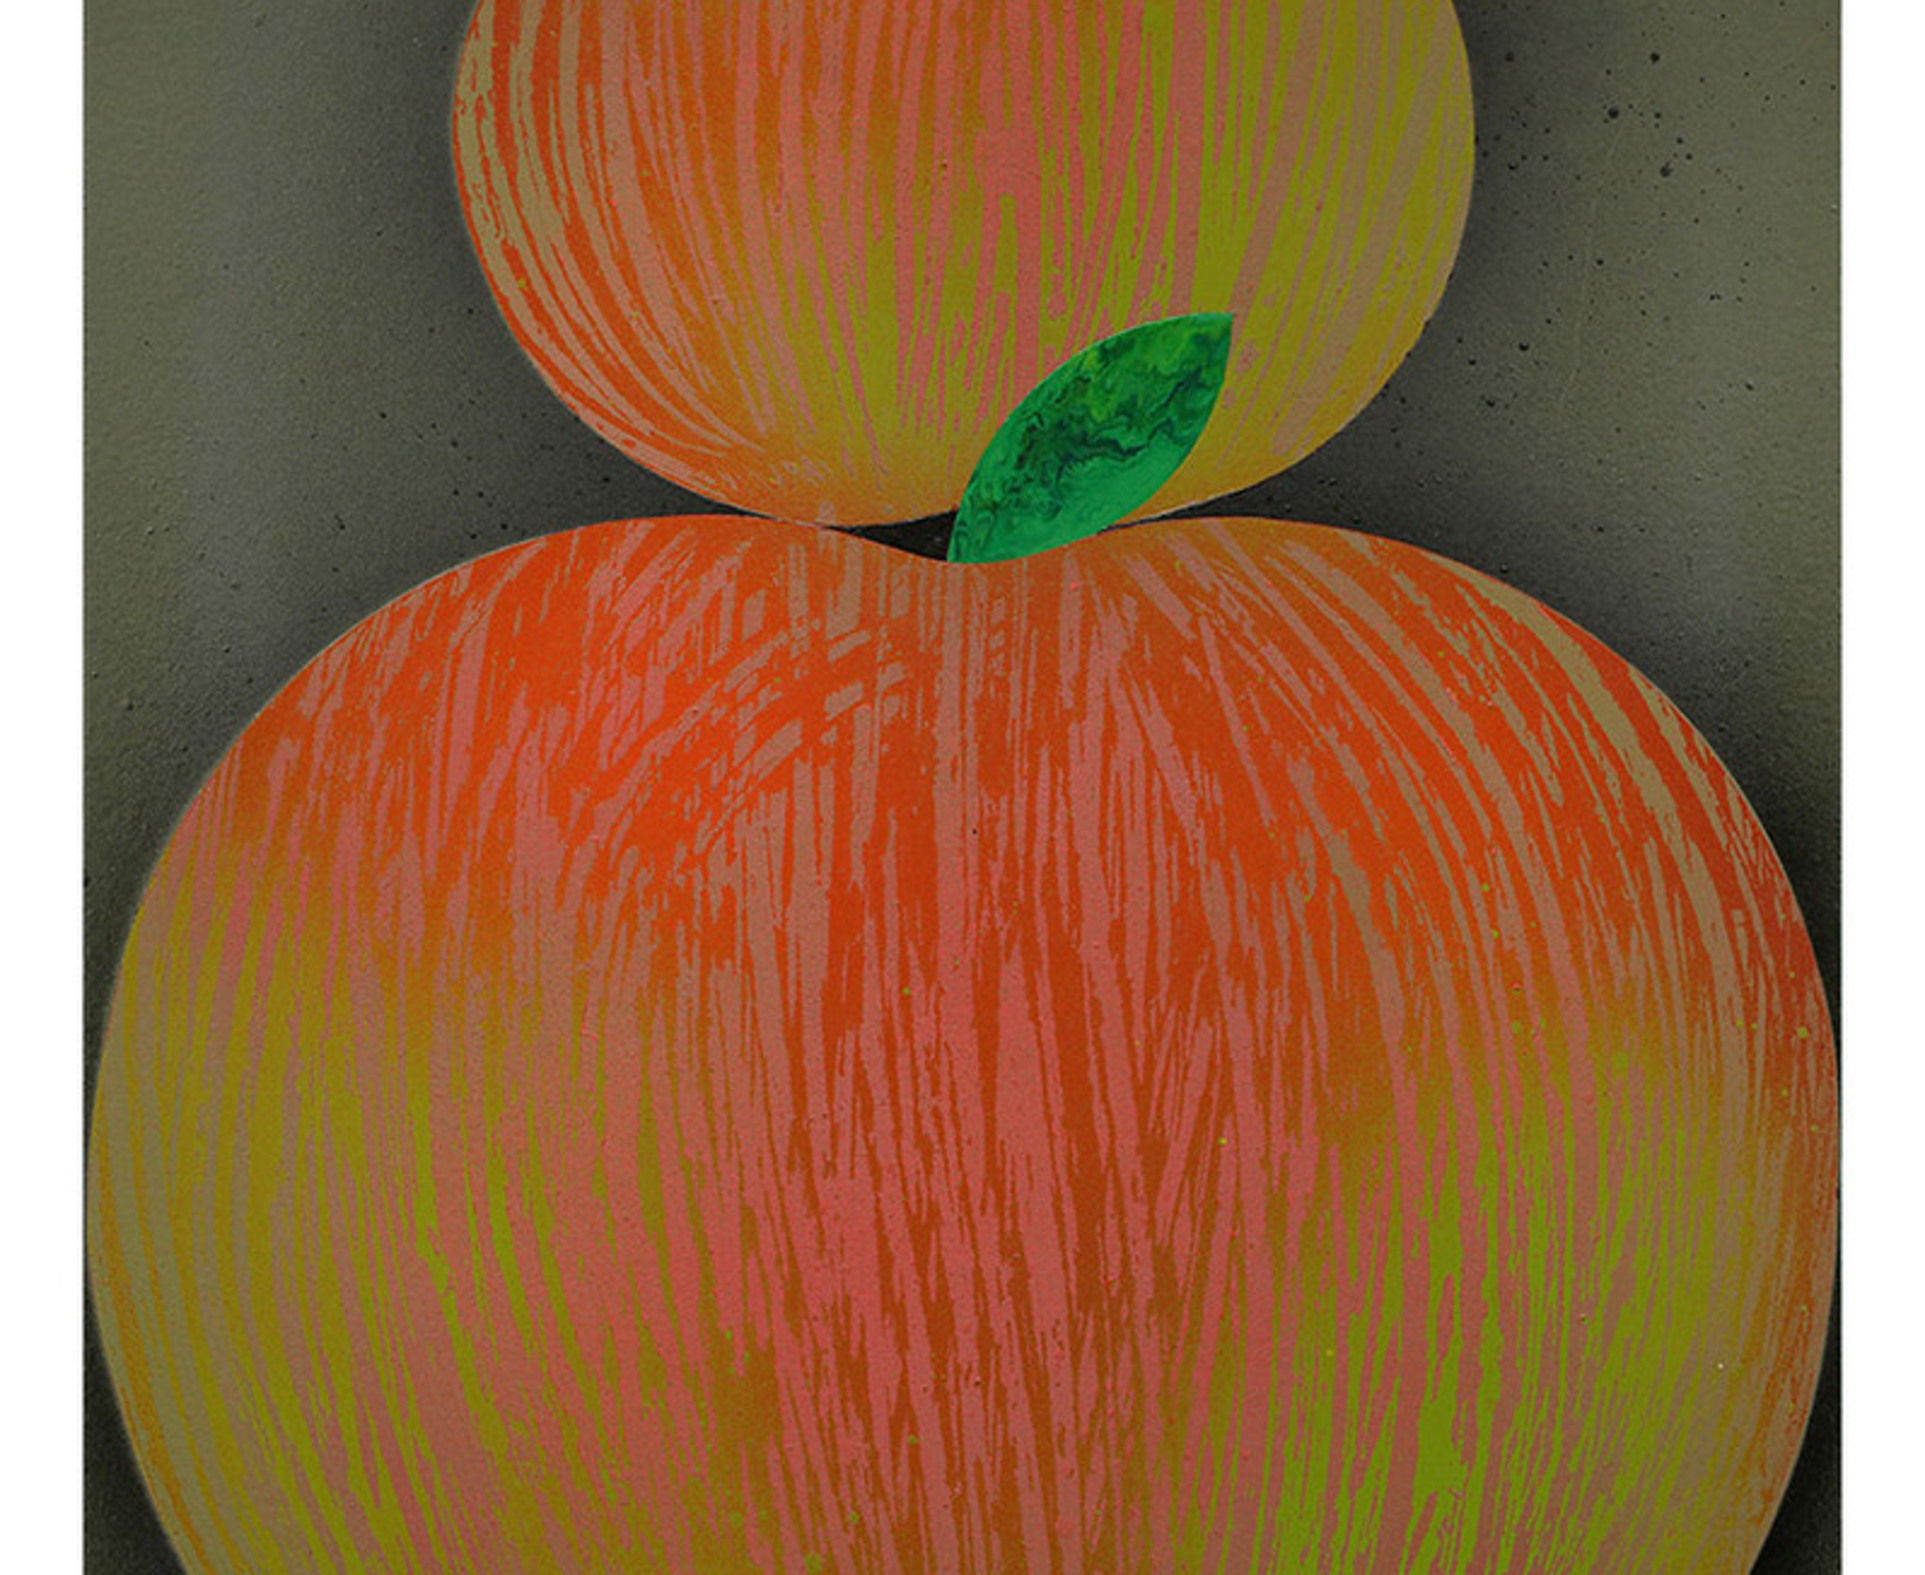 Casey Gray, Two Apples, 2017